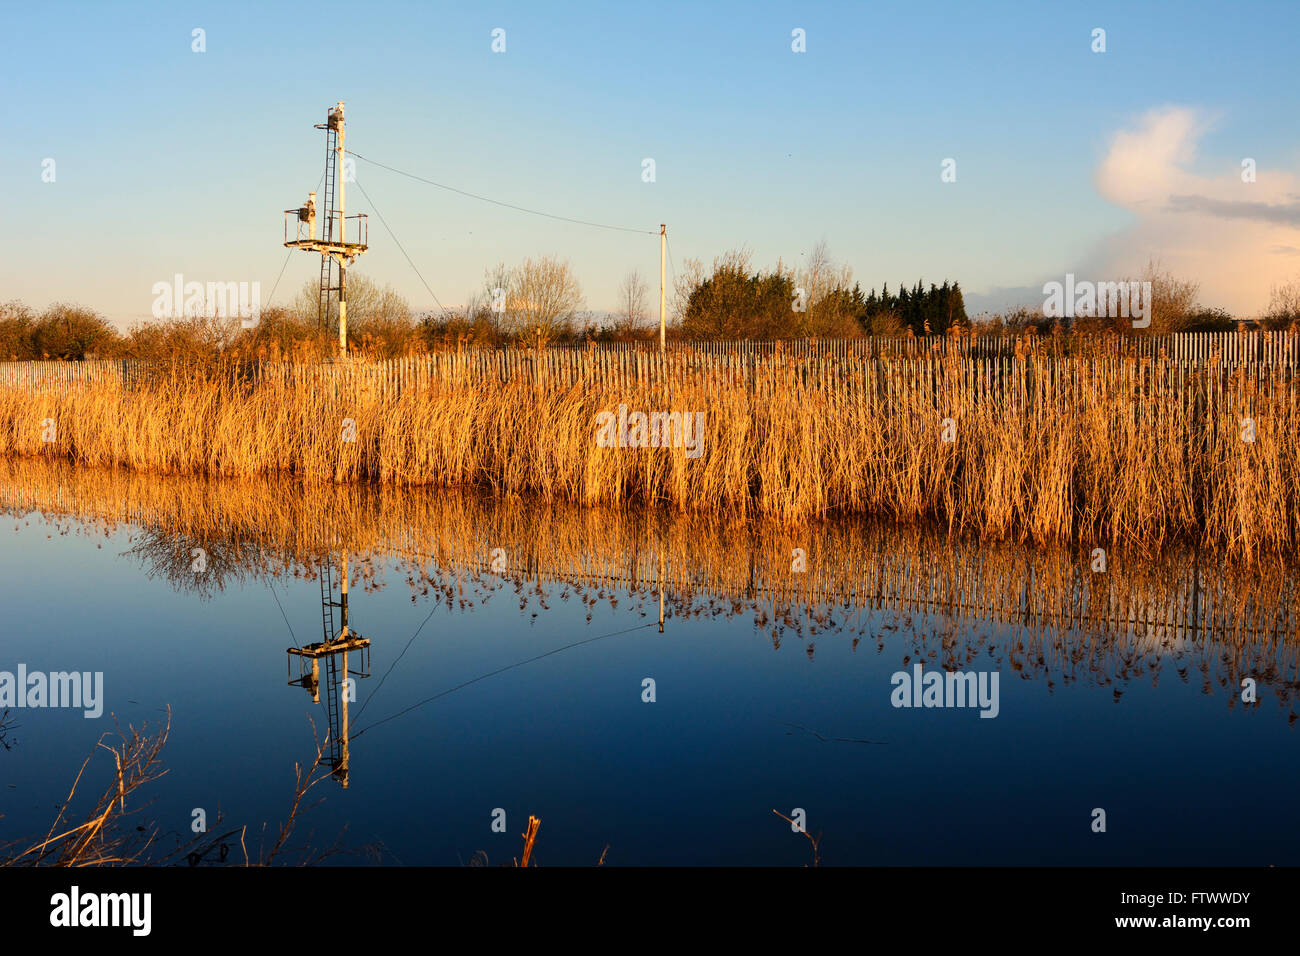 Sankey Canal at dawn showing the reed beds along the banks by Widnes Warth Nature Reserve. Stock Photo